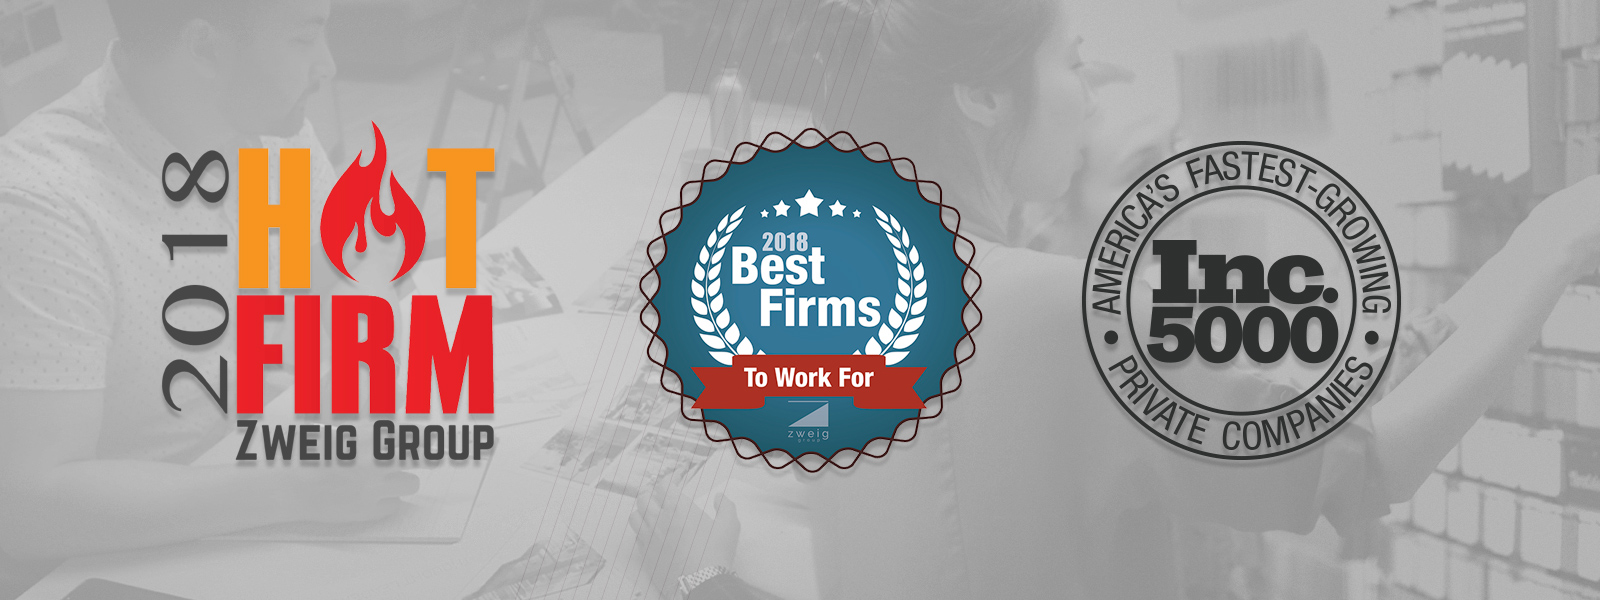 2018 Hot Firm Zweig Group, 2018 Best Firms, Inc. 5000 America's Fastest-Growing Private Companies